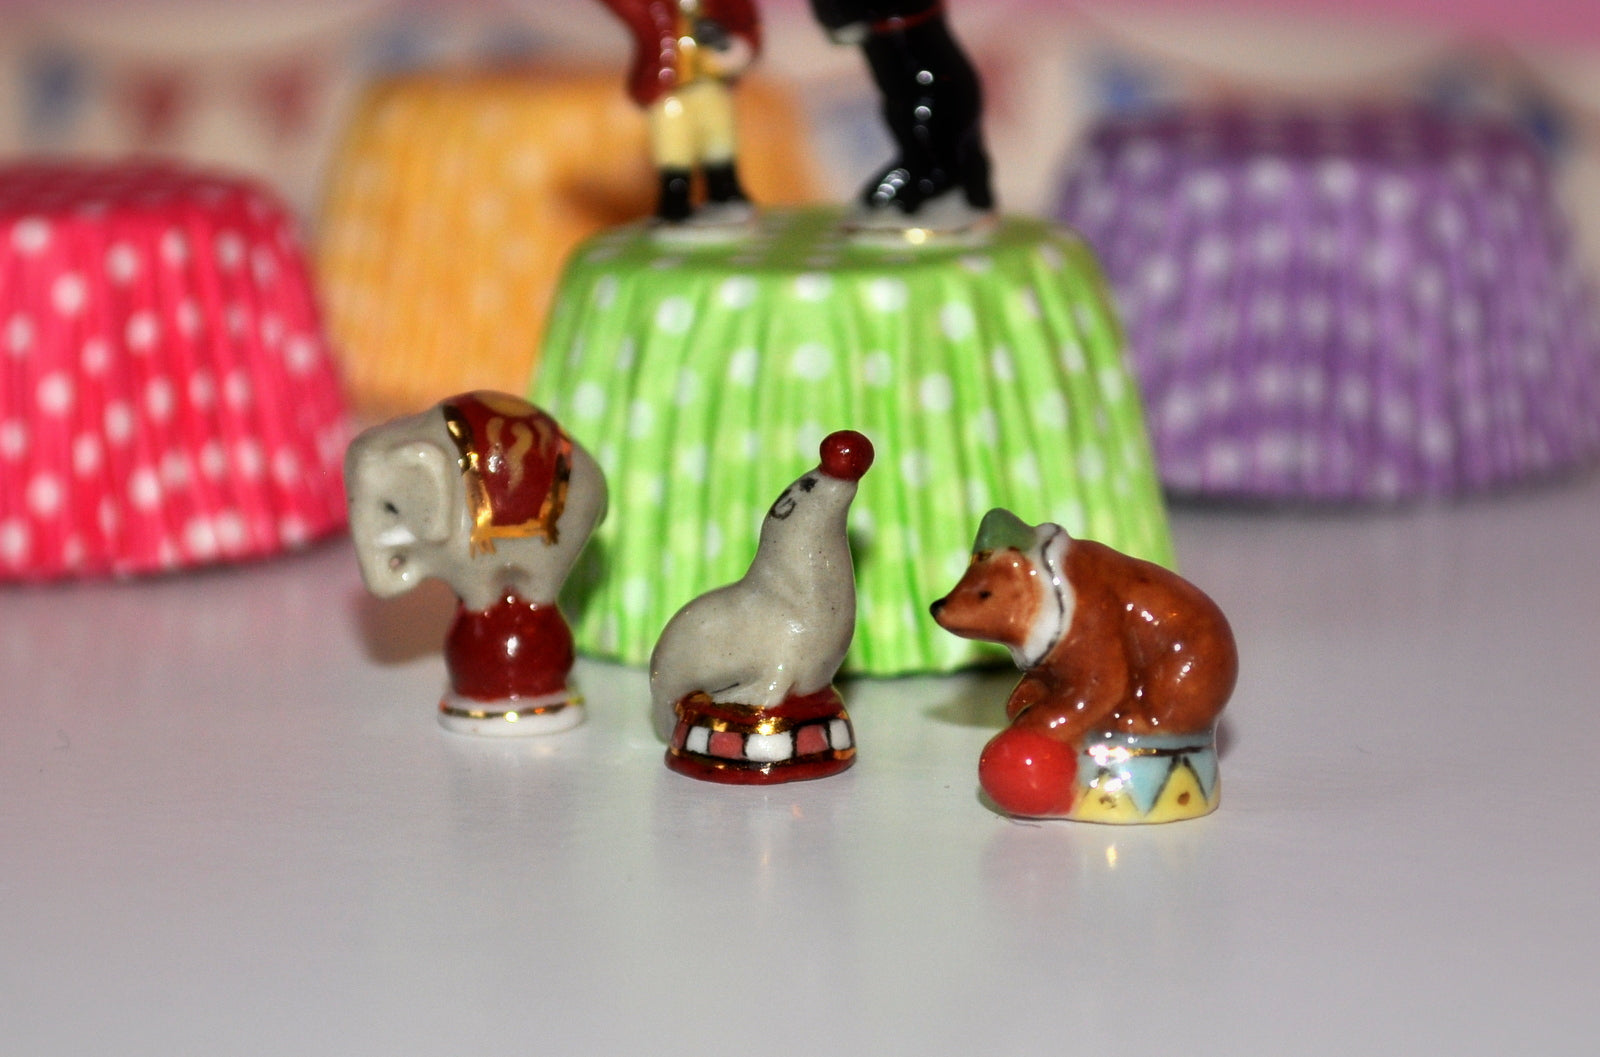 Hand-painted Circus Set of Five Porcelain Figurines #2 by Elmarie Wood-Callander